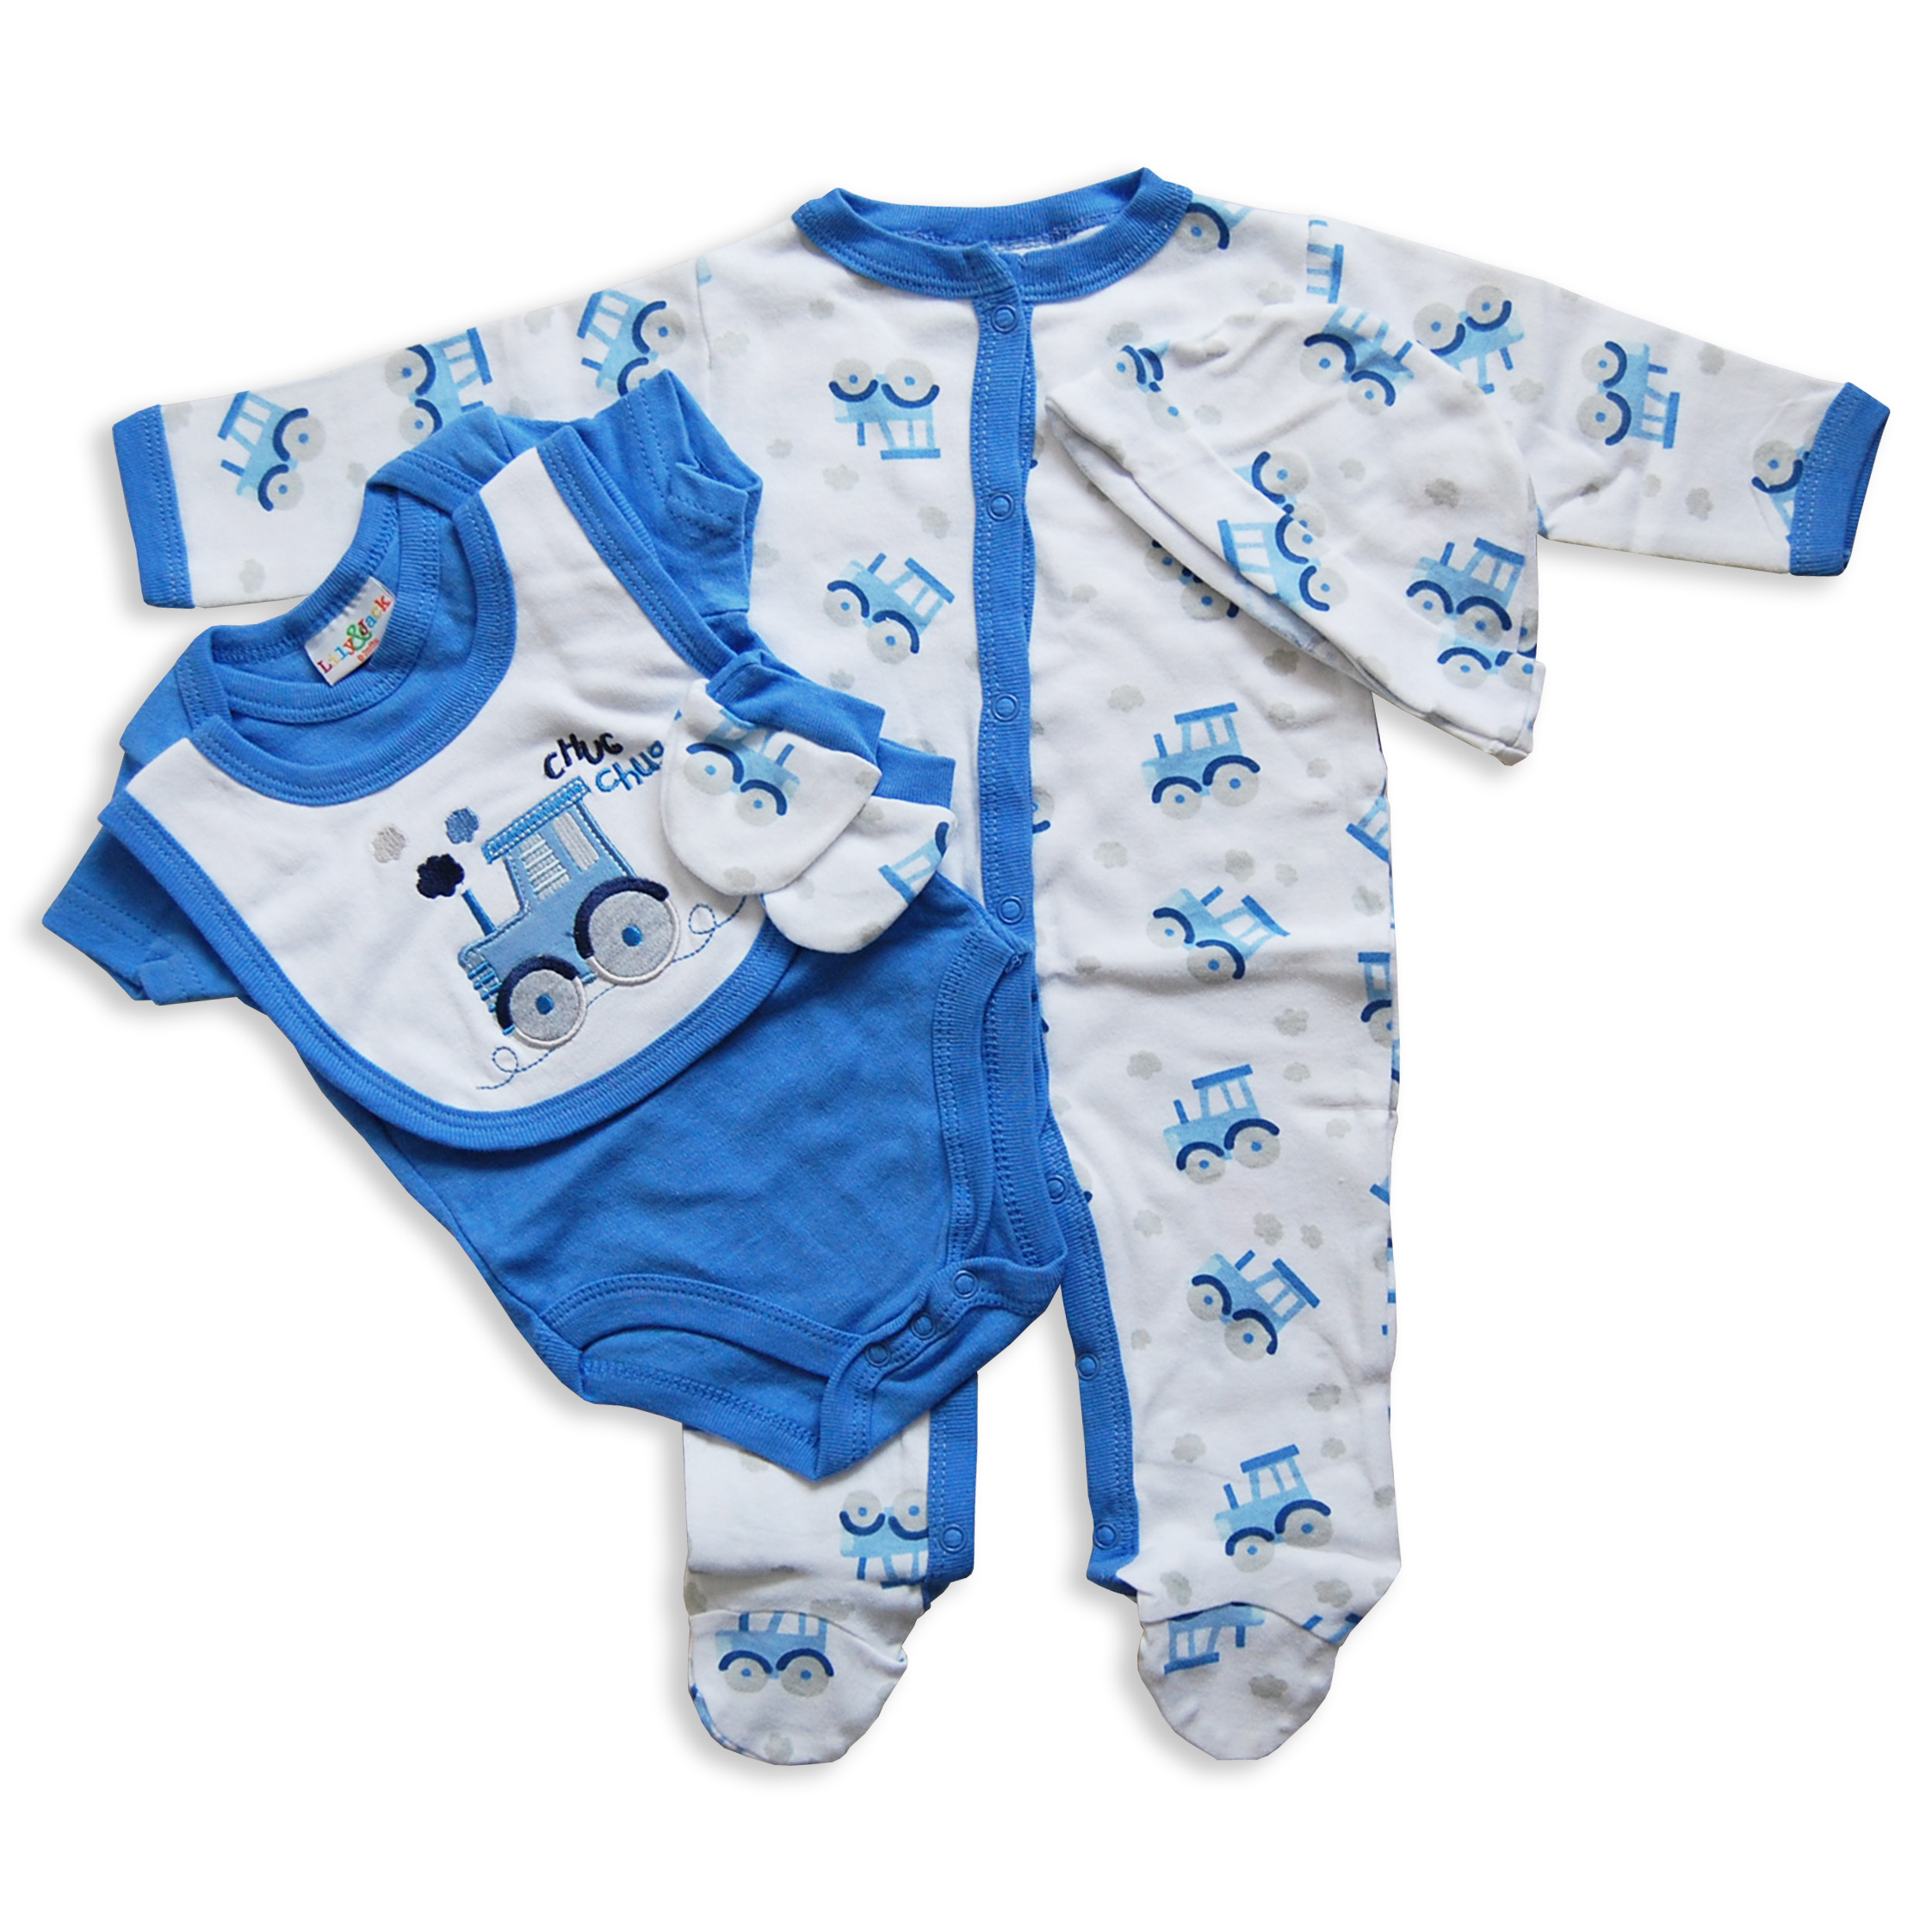 Carter's Infant Baby Boy Layette Short overall 2-PC Set Size 3 Months New See more like this. Old Navy Baby Boy 2 Sleep Gowns Sacks Size 3 6 Months Blue Ivory Dots Layette. Brand New. $ Buy It Now +$ shipping. 27+ Watching. Buster Brown Baby Boys' 5-Piece Layette .